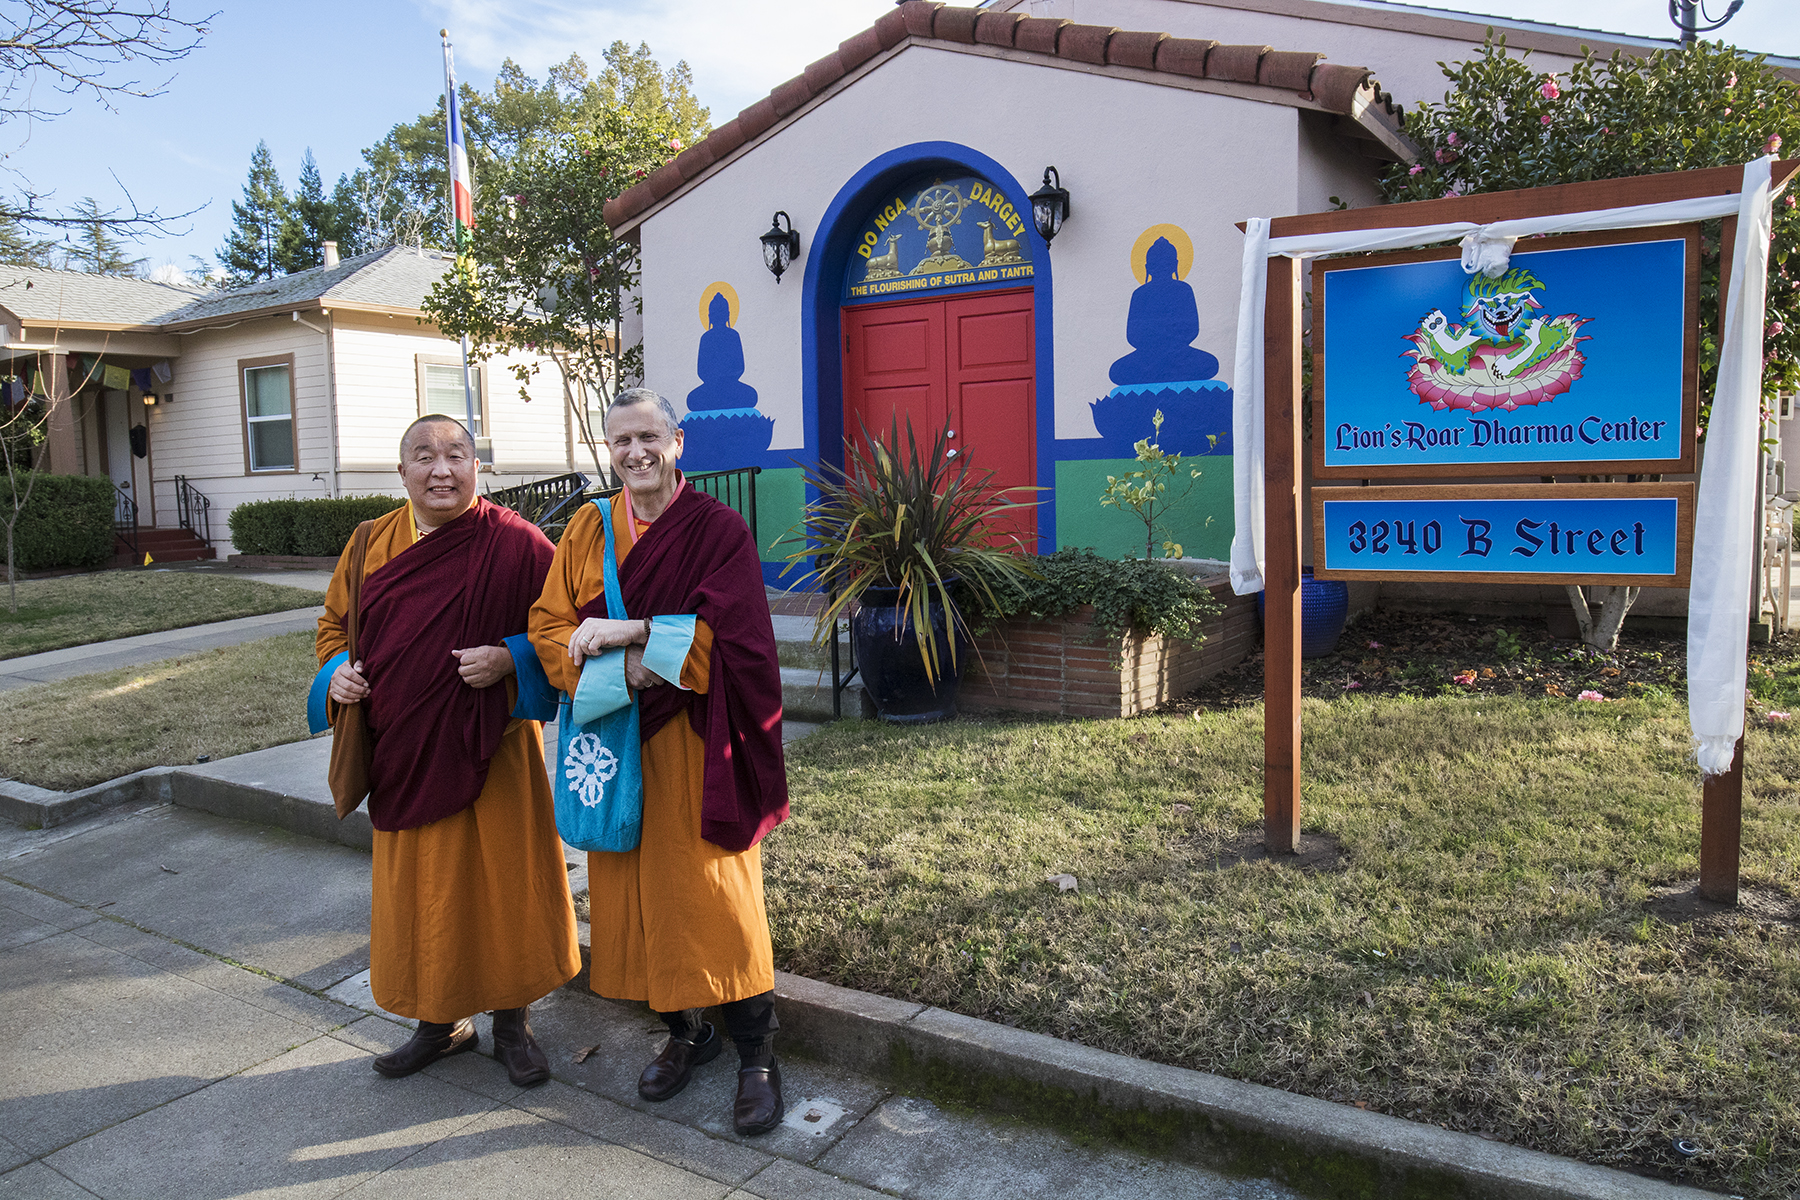 Lama Yeshe Jinpa and Geshe Damchoebaazar Gurjav in front of Do Nga Dargey temple, Sacramento, california and the new sign